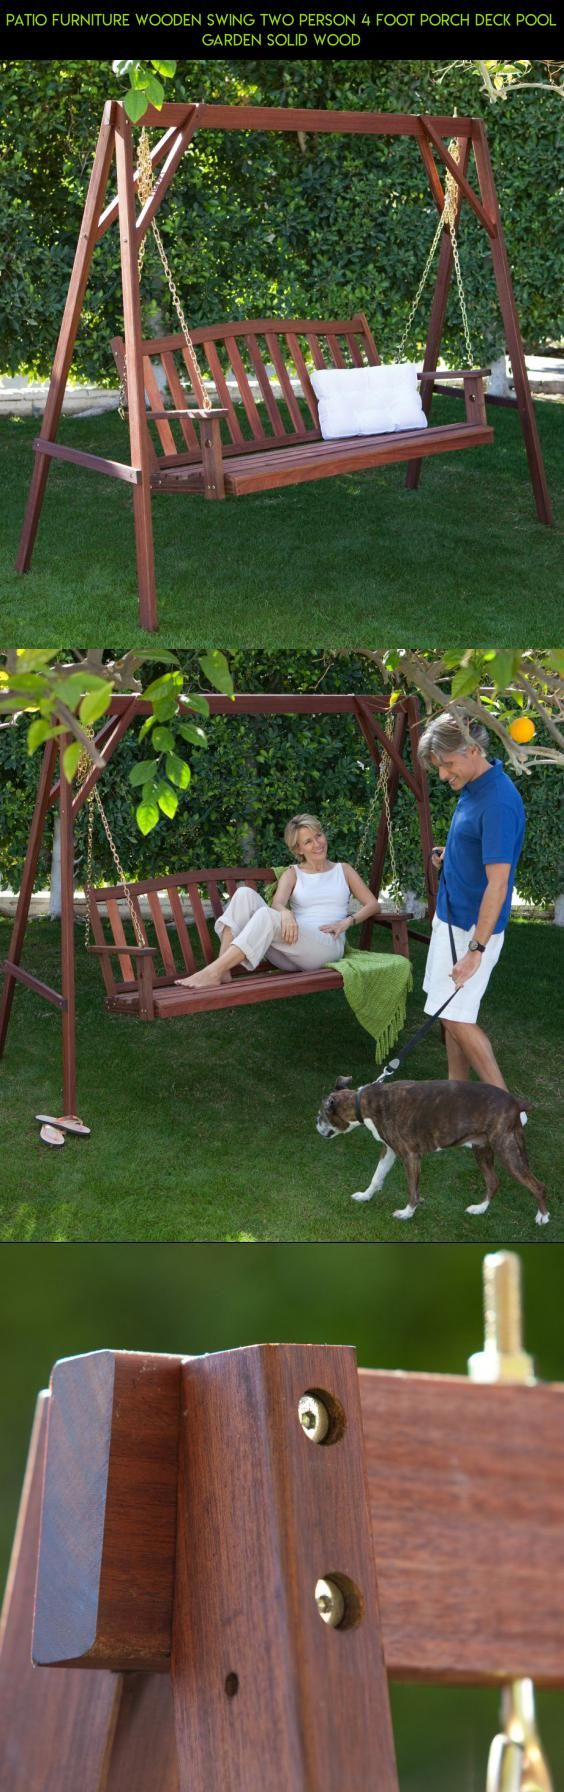 Patio furniture wooden swing two person foot porch deck pool